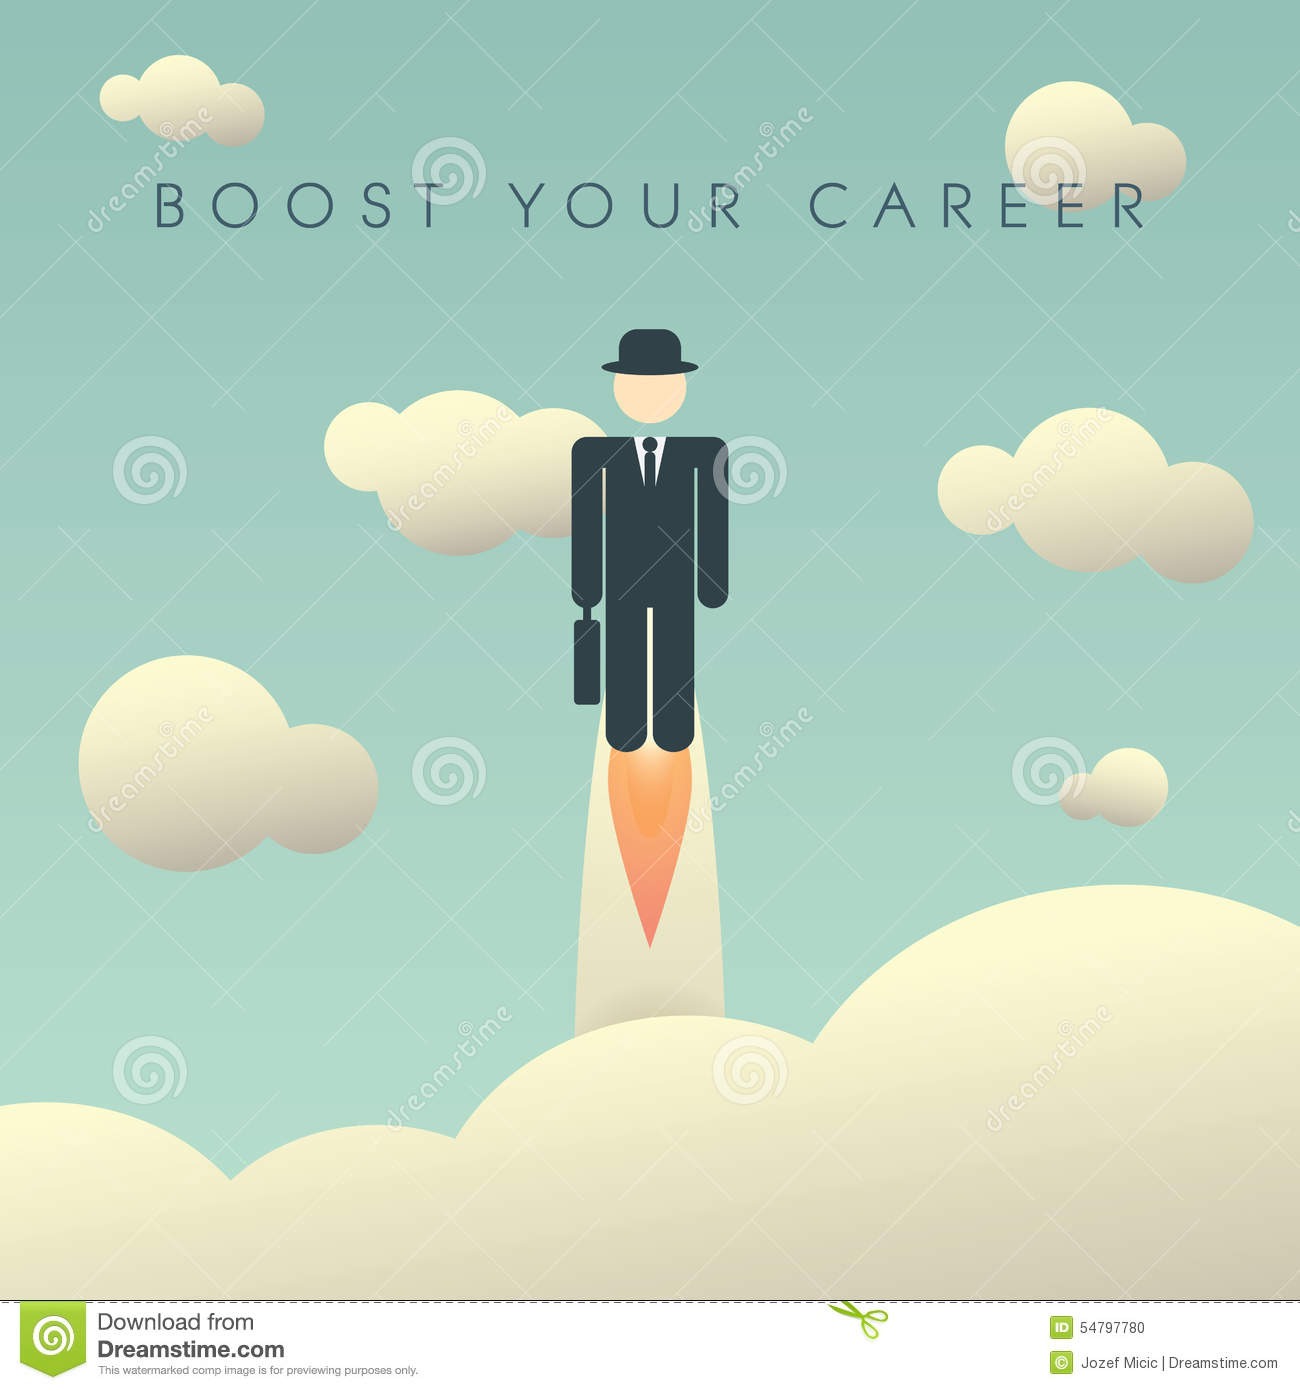 Career Development Poster Template With Stock Vector - Image: 54797780